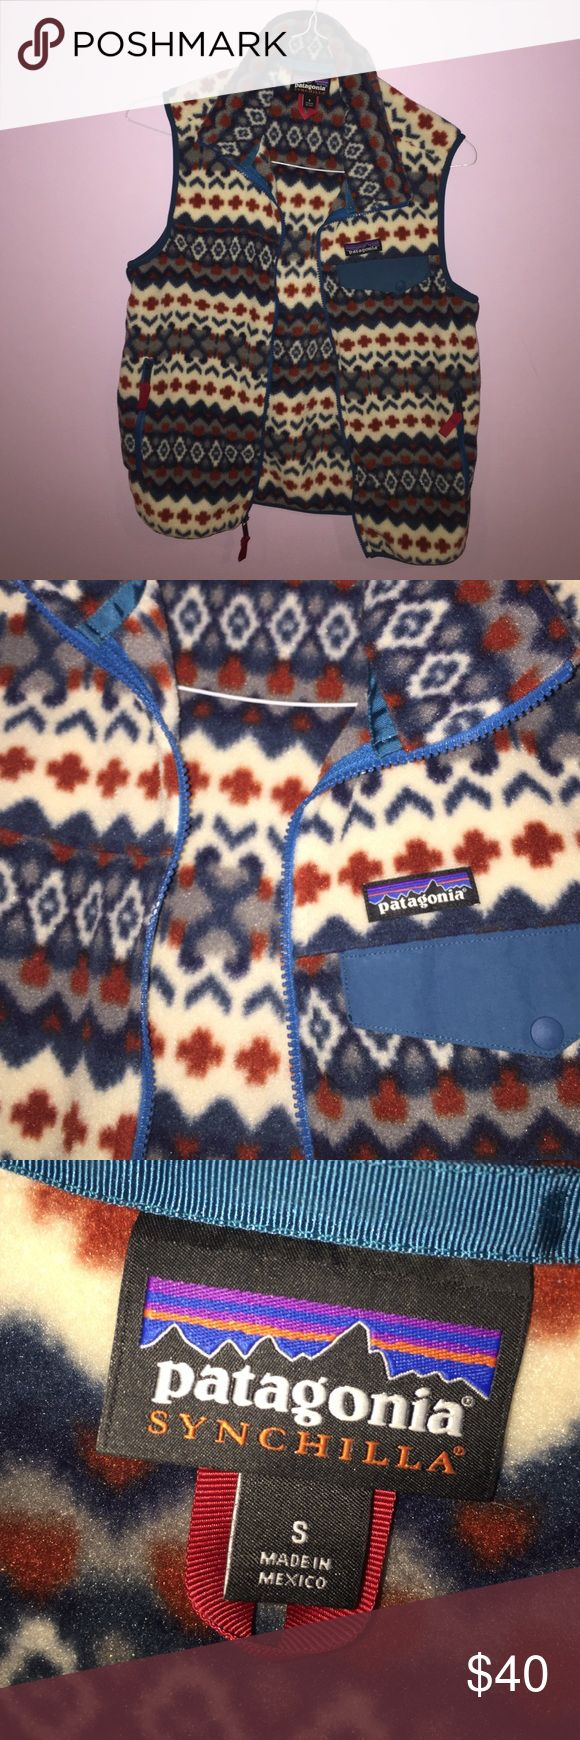 Patterned Patagonia vest Men's Patagonia vest, super cute pattern perfect for the holidays. Size Small in men's. Zippered and has a pocket. Never worn and in perfect condition! Patagonia Jackets & Coats Vests